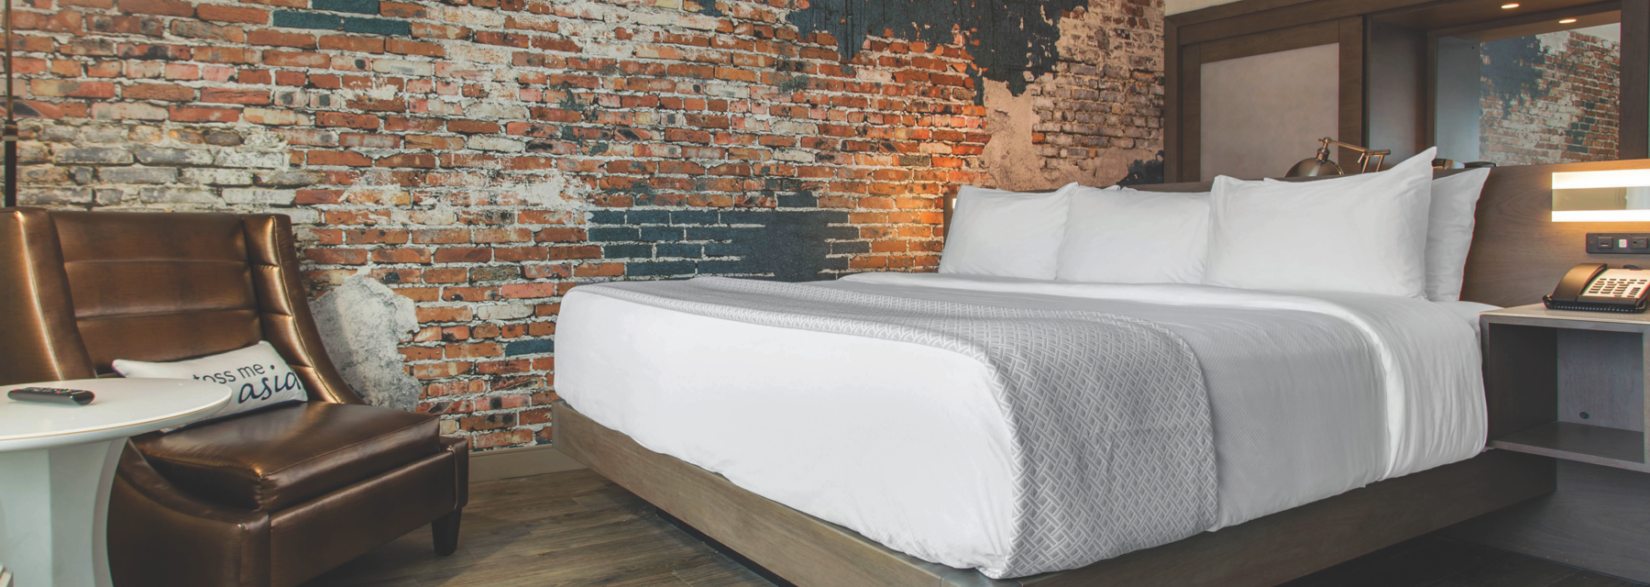 Hotel Bed with Exposed-Brick Wall